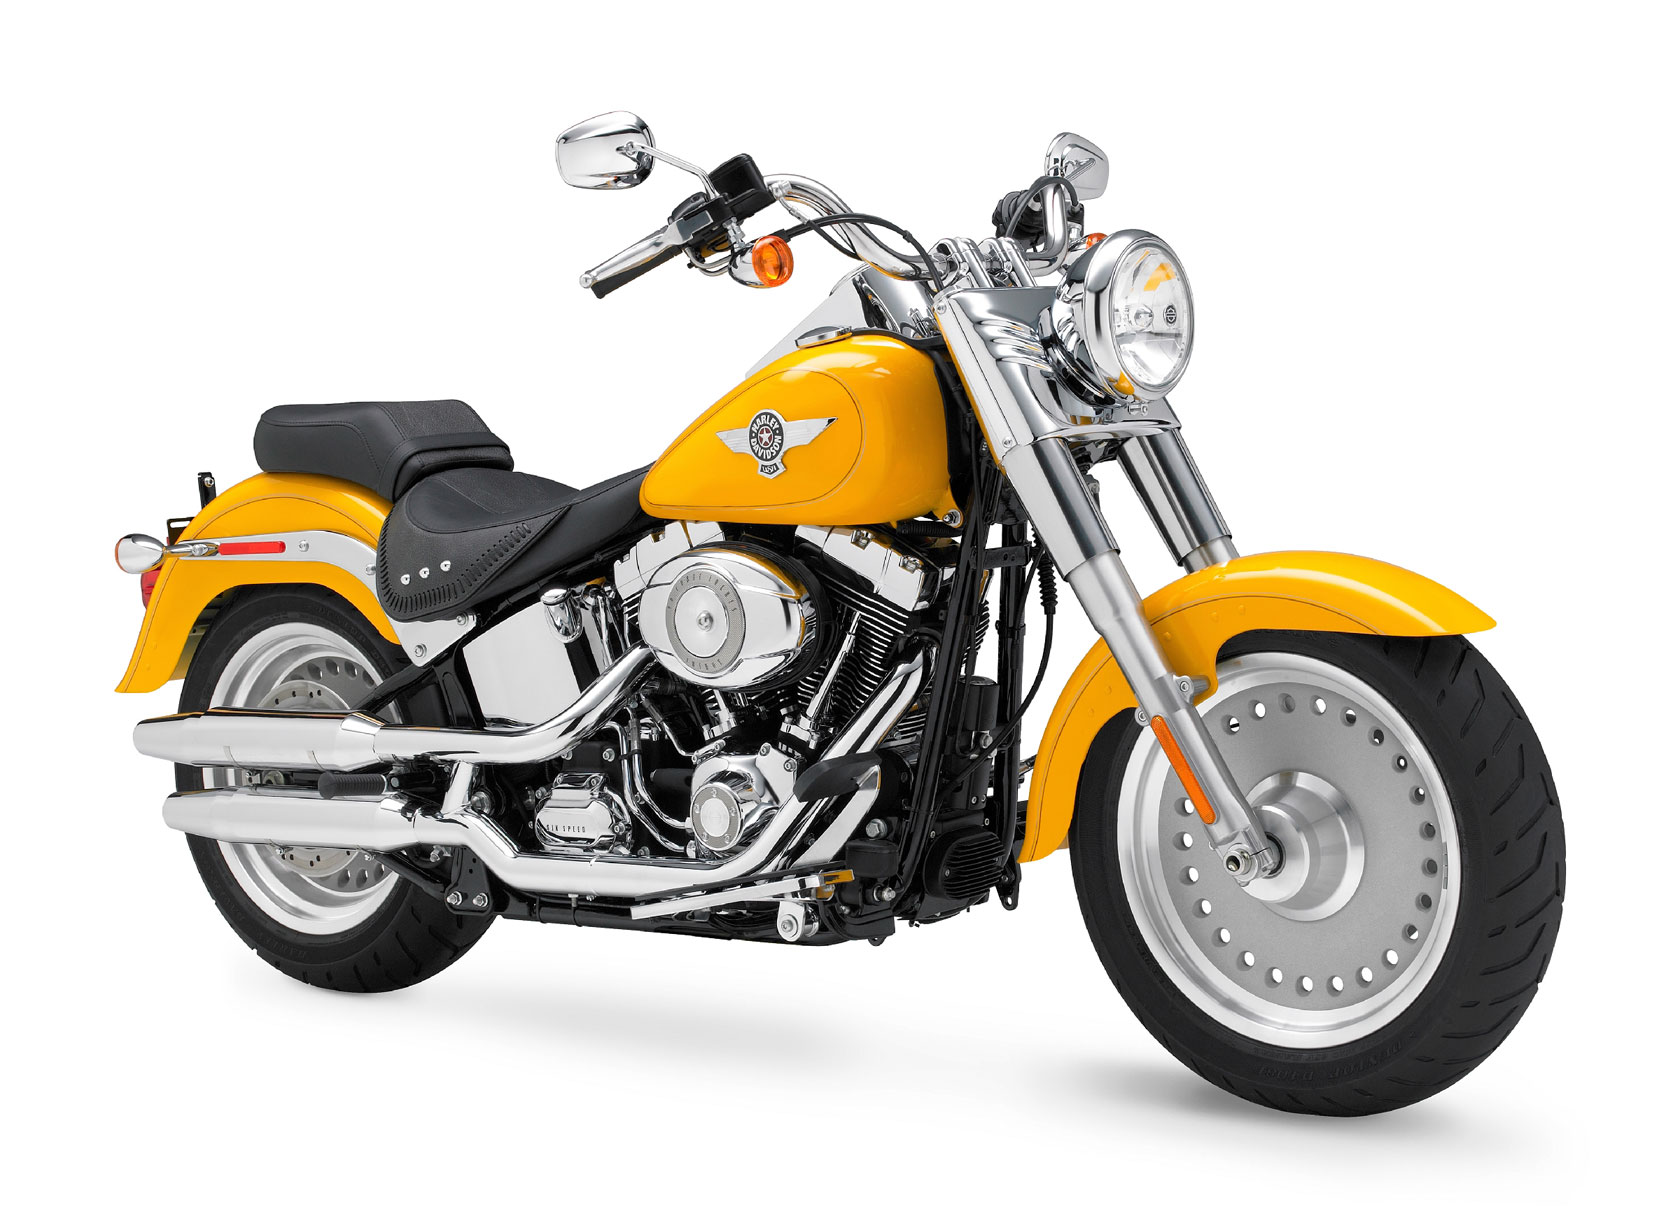 Harley-Davidson FLSTF Fat Boy 2009 images #80423